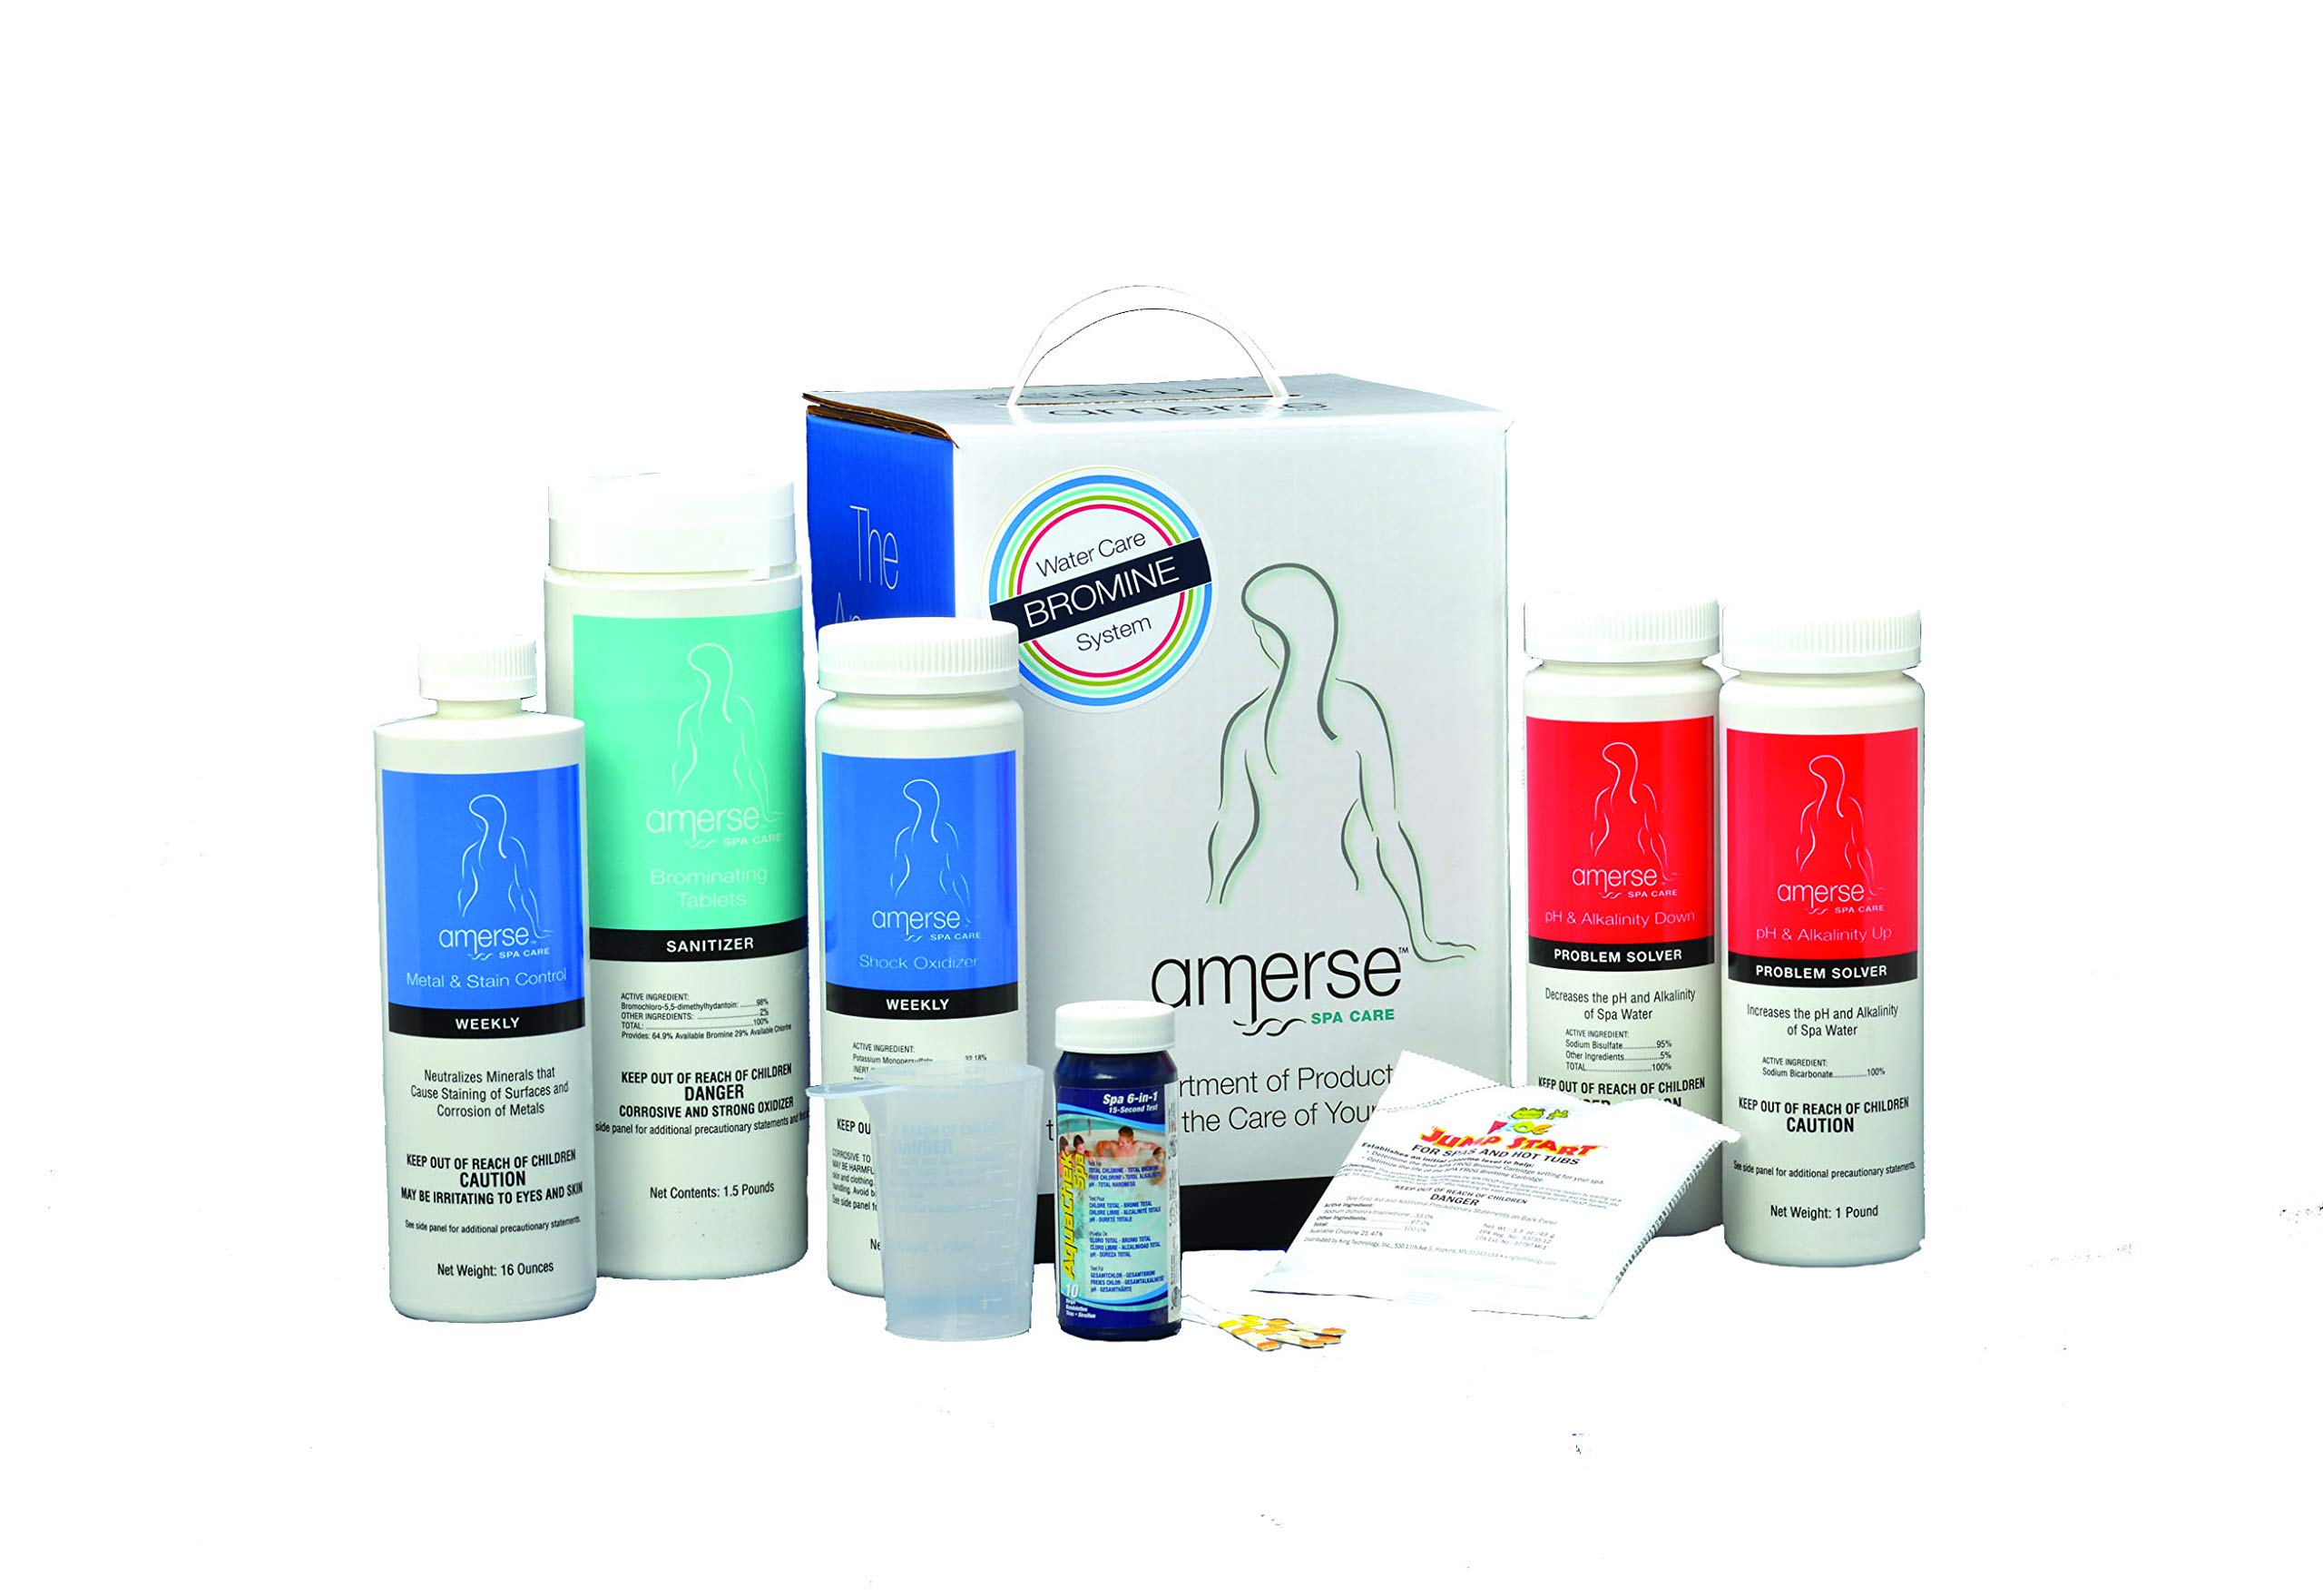 Amerse Bromine Hot Tub Spa Water Care Treatment Kit by Amerse